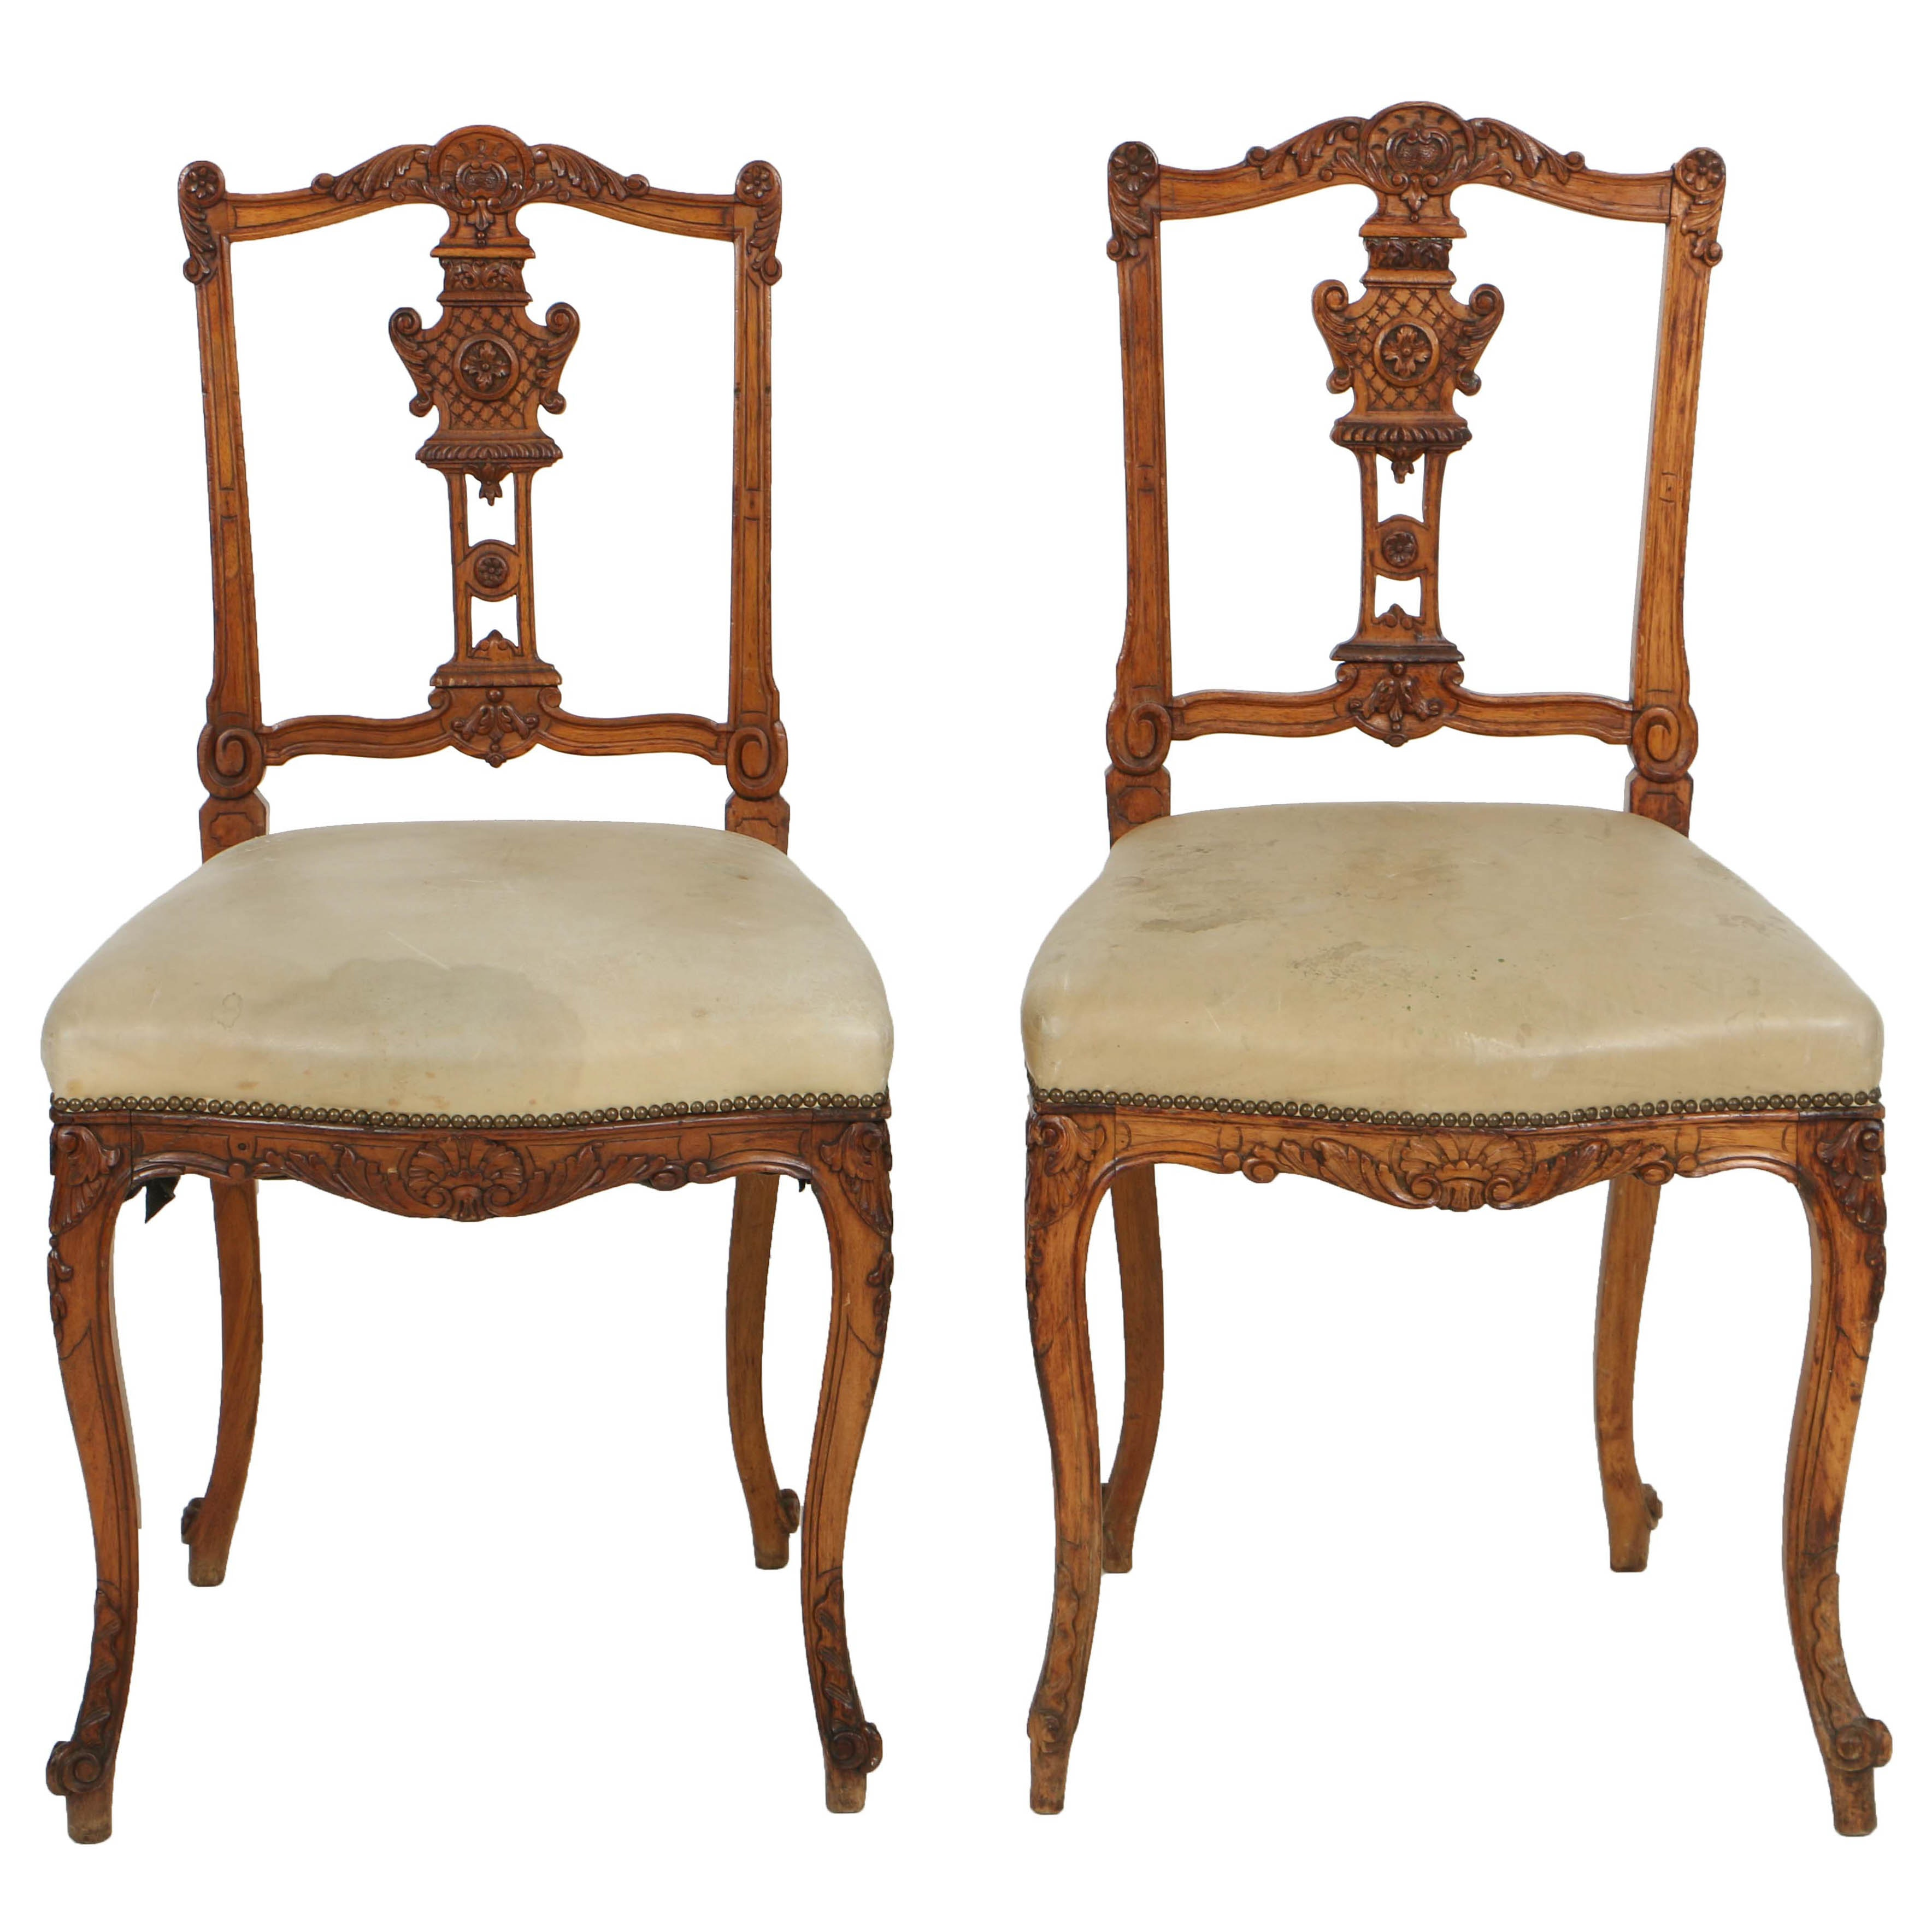 Antique Louis XV Style Ballroom Side Chairs, Circa Mid to Late 19th Century